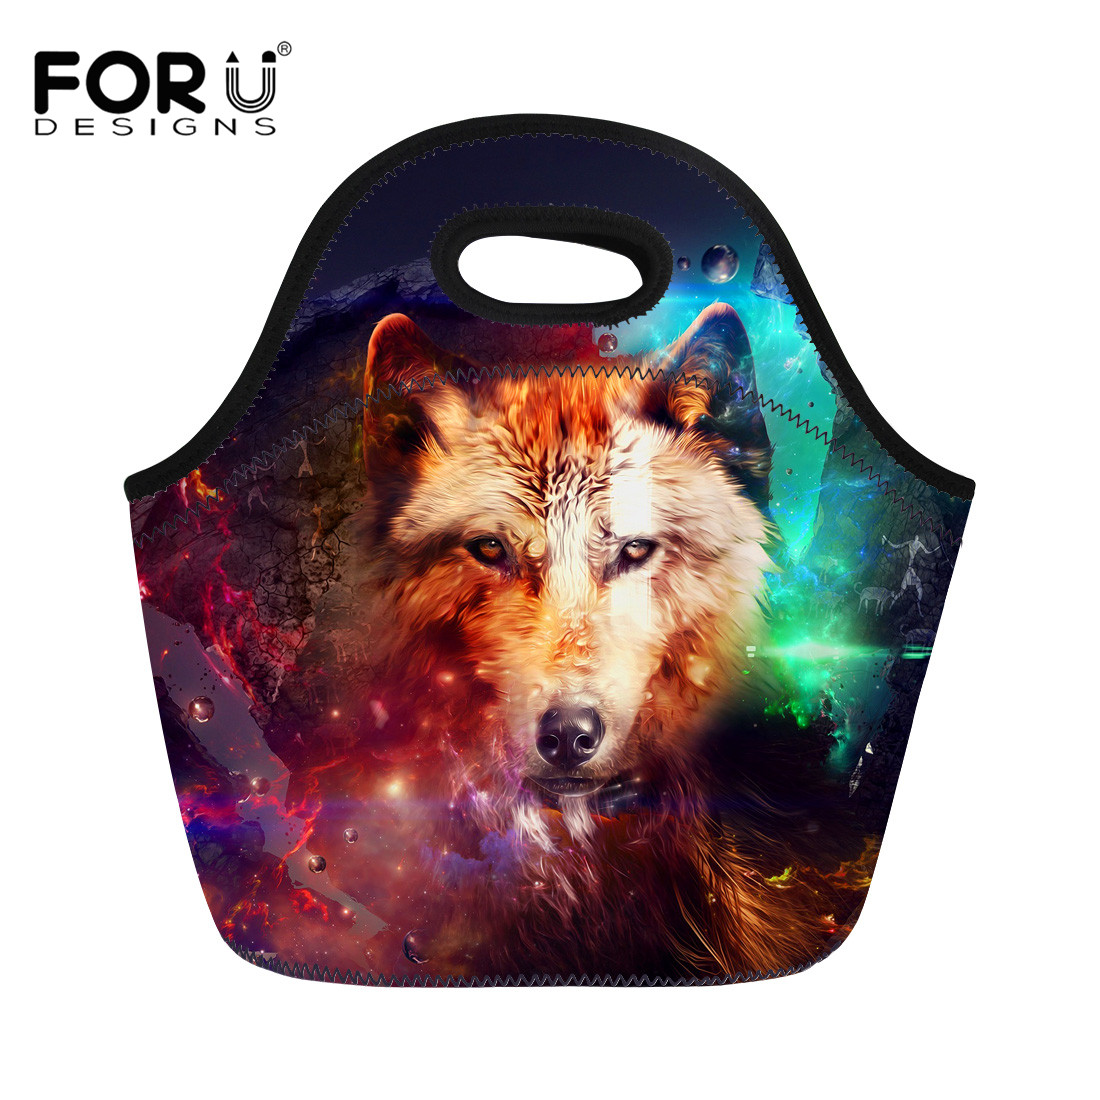 FORUDESIGNS 3D Printing Wolf Lunch Bags Women Thermal Insulated Cooler Pouch Kids Picnic Food Organizer Accessories Supplies